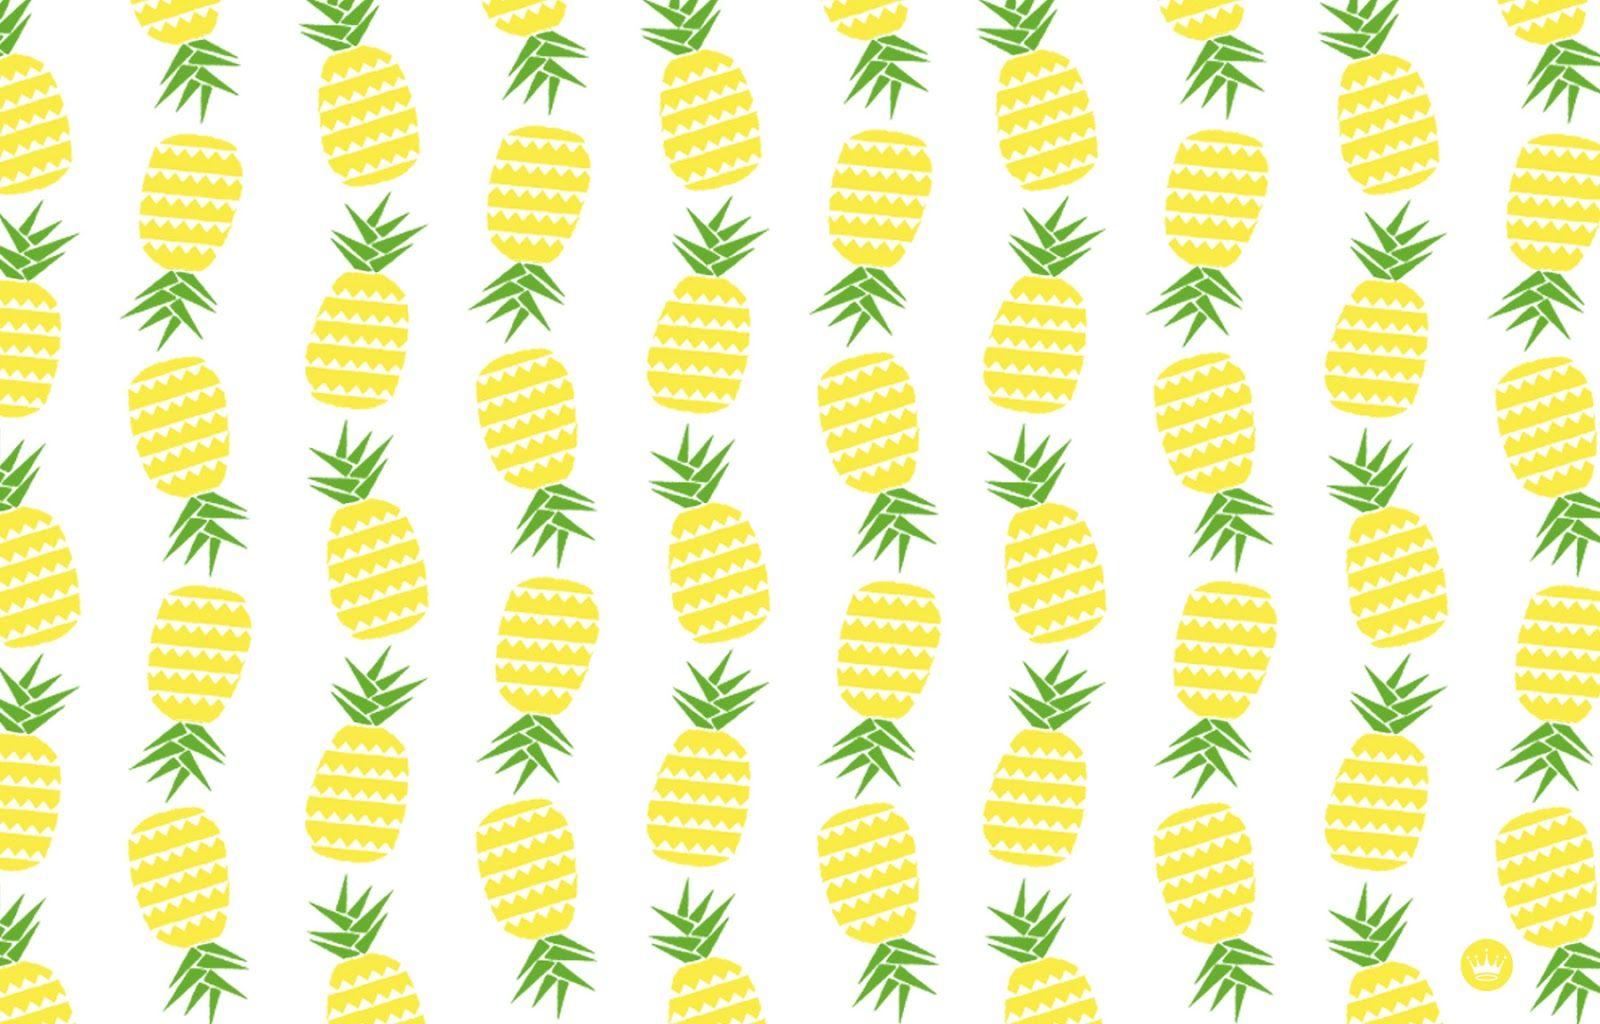 Amazing Wallpaper Macbook Pineapple - 9b4d945407eea7cb953e79d2081c46b8  Perfect Image Reference_866551.jpg